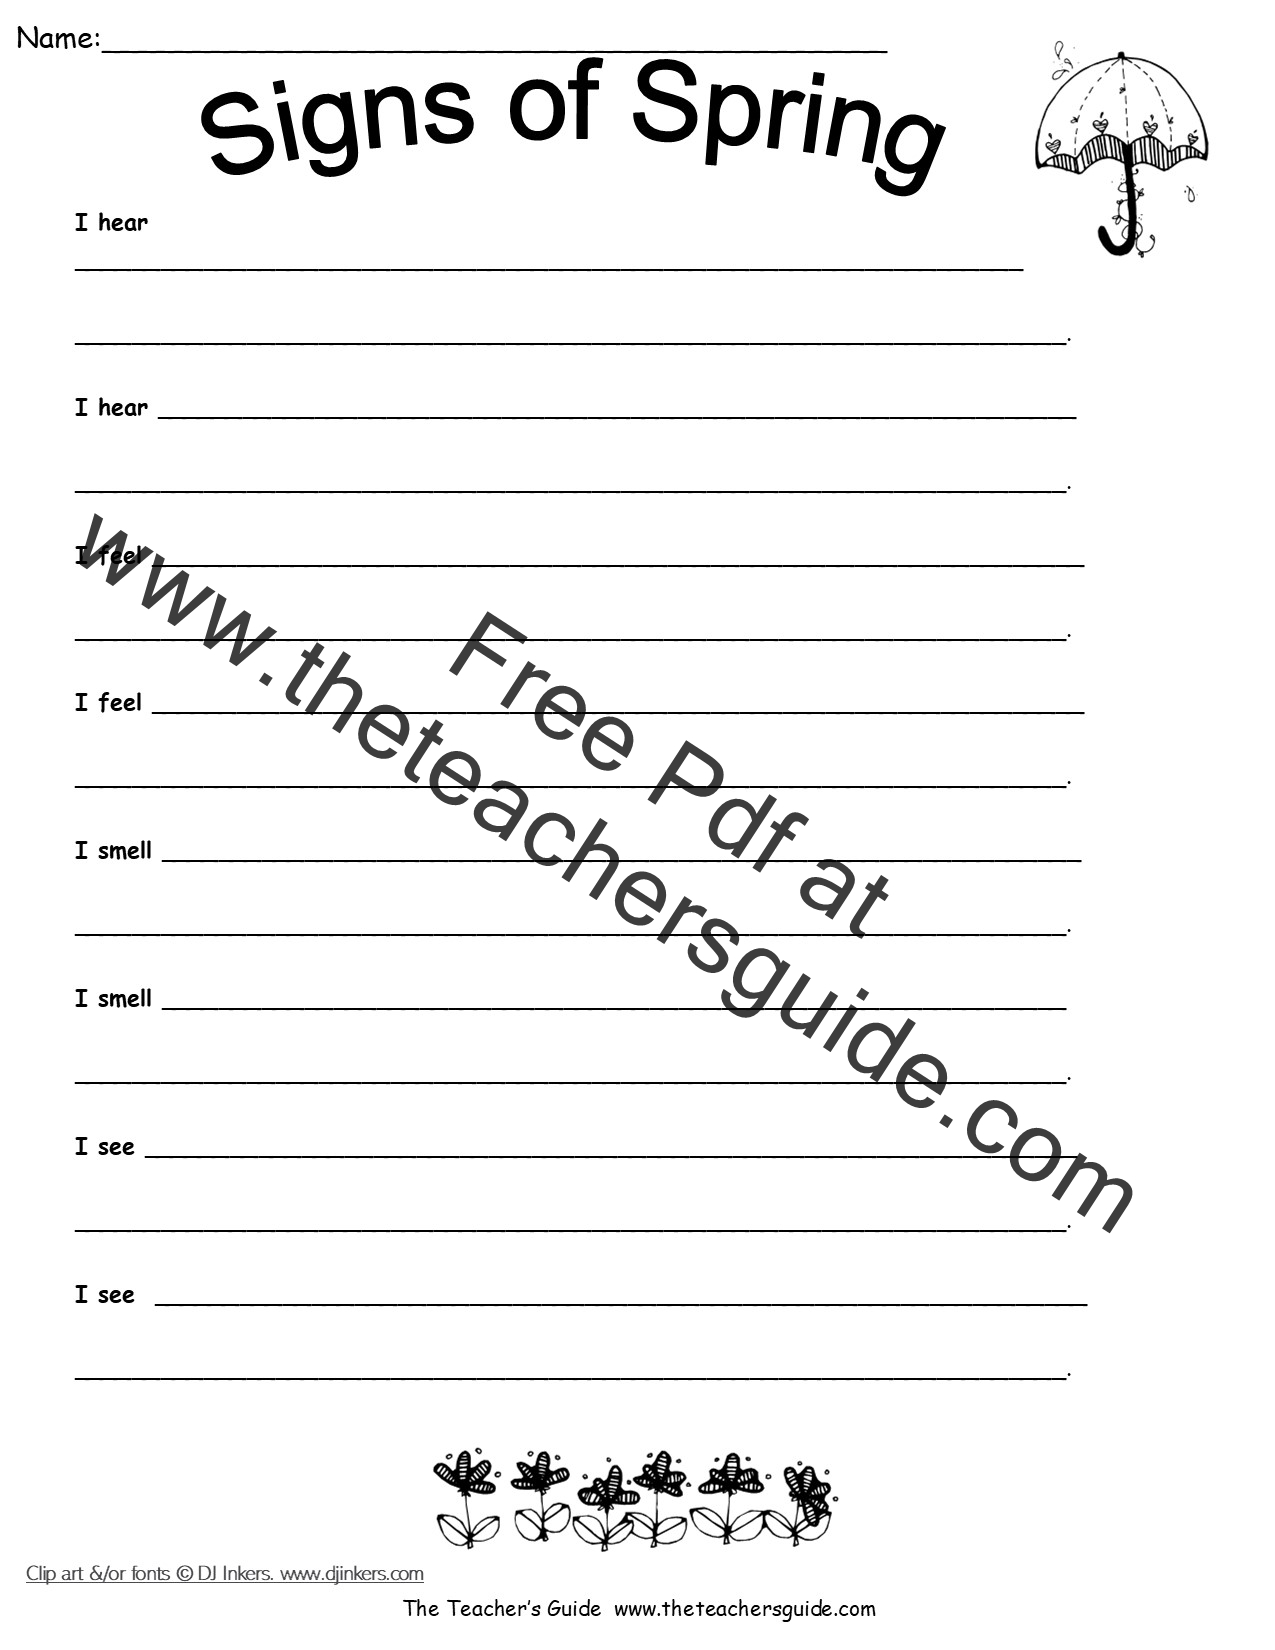 Science Worksheets And Printouts From The Teacher S Guide